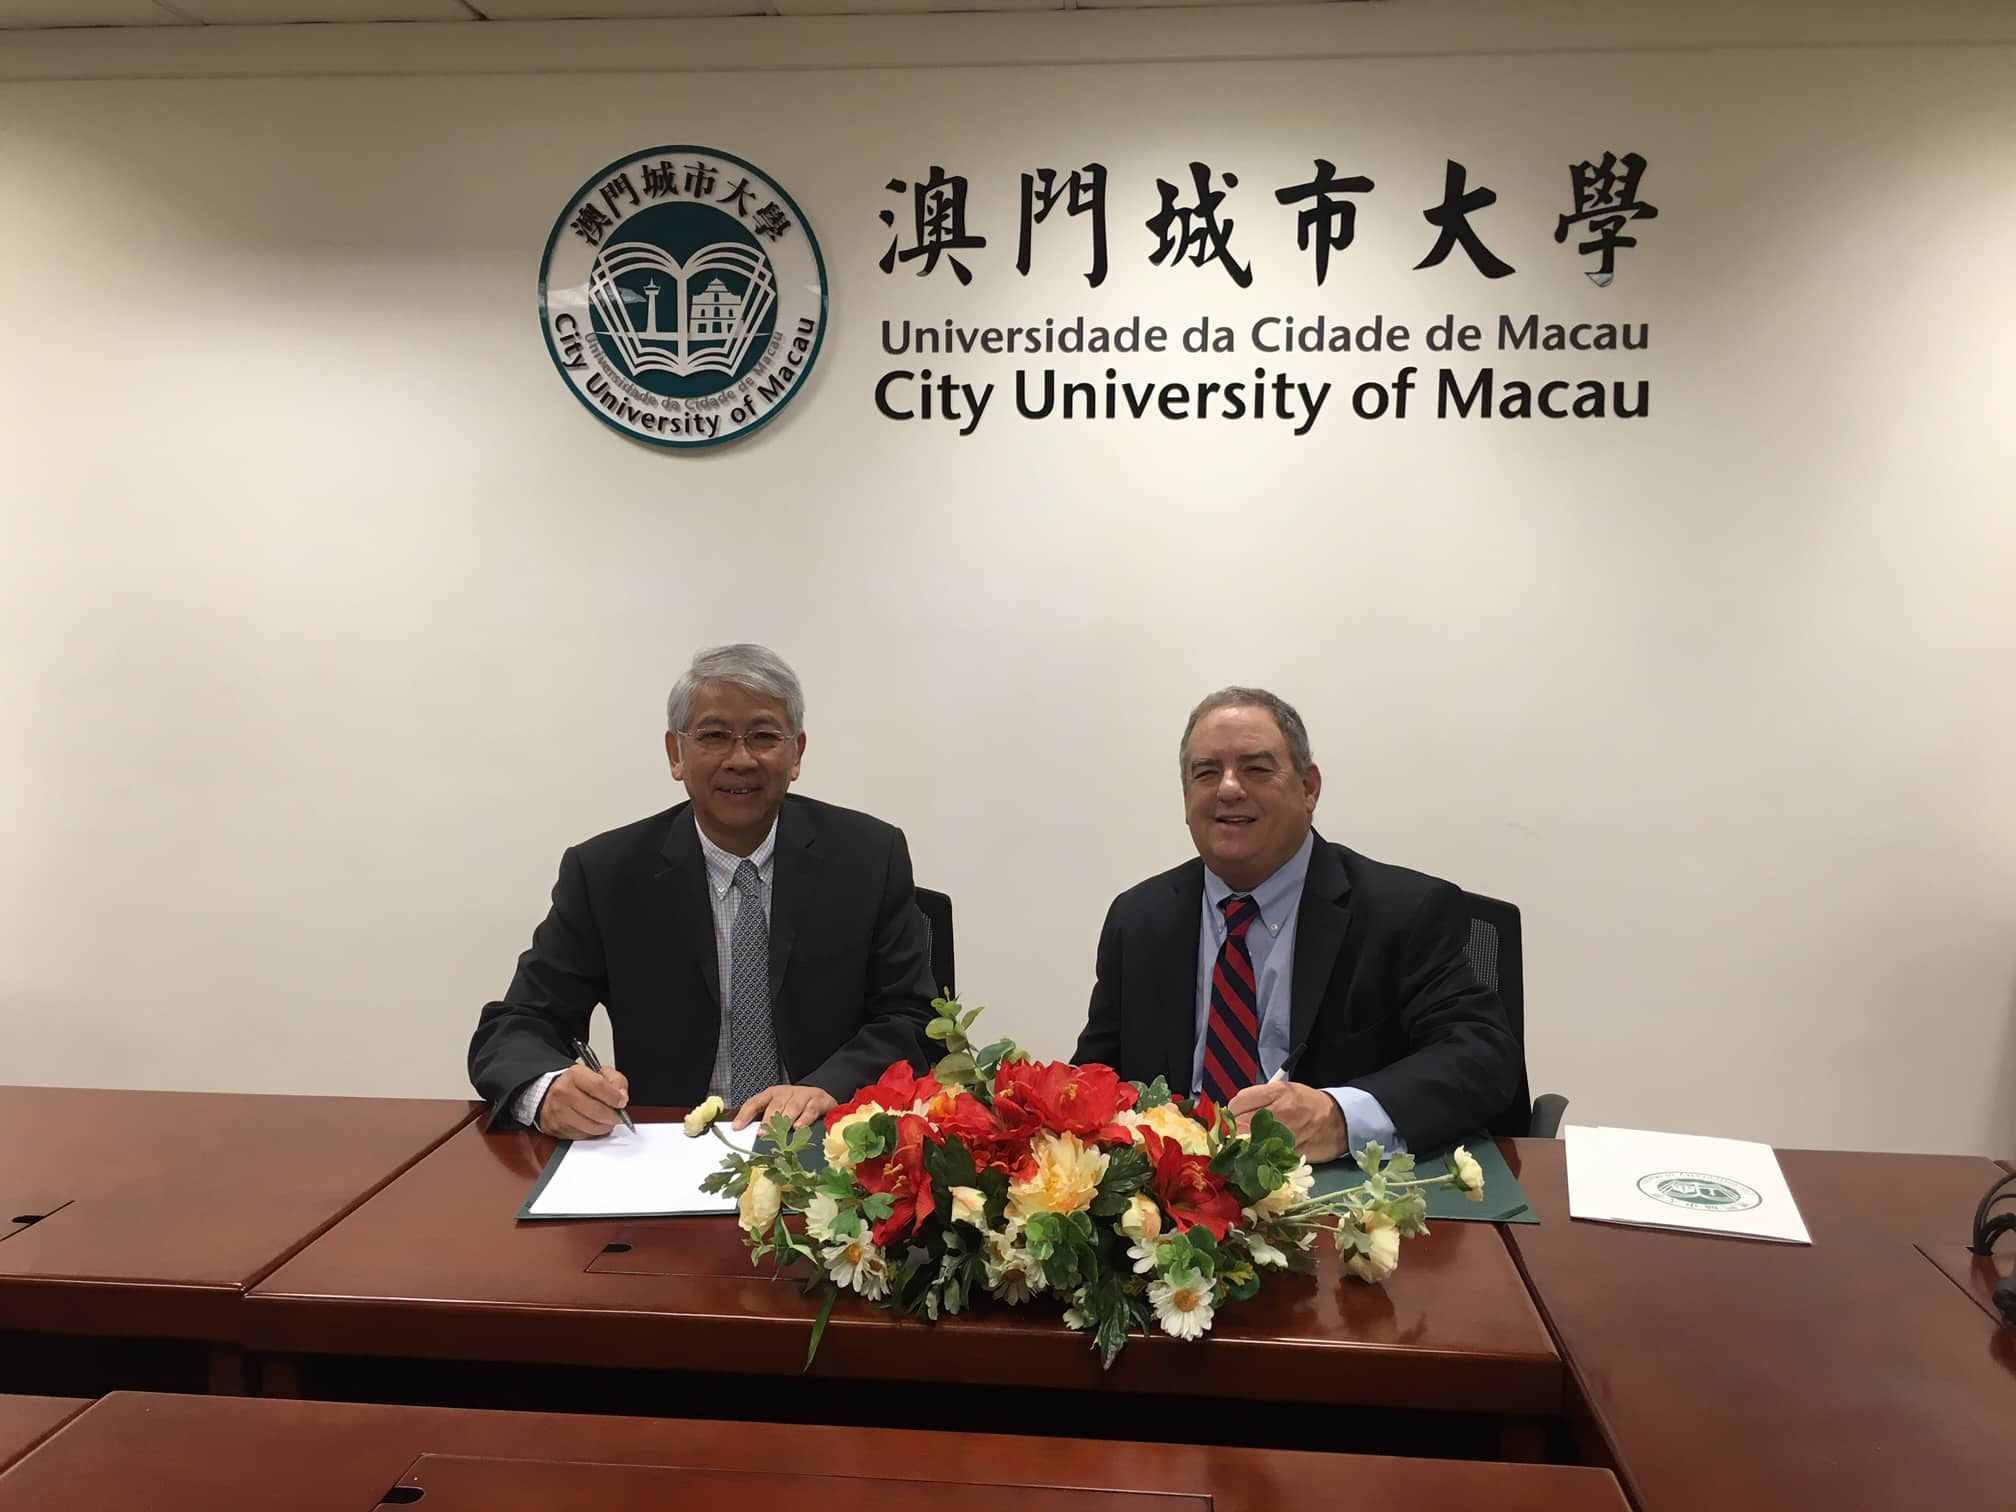 Arthur Keiser Ph.D. and City University of Macau signed Memorandum of Understanding